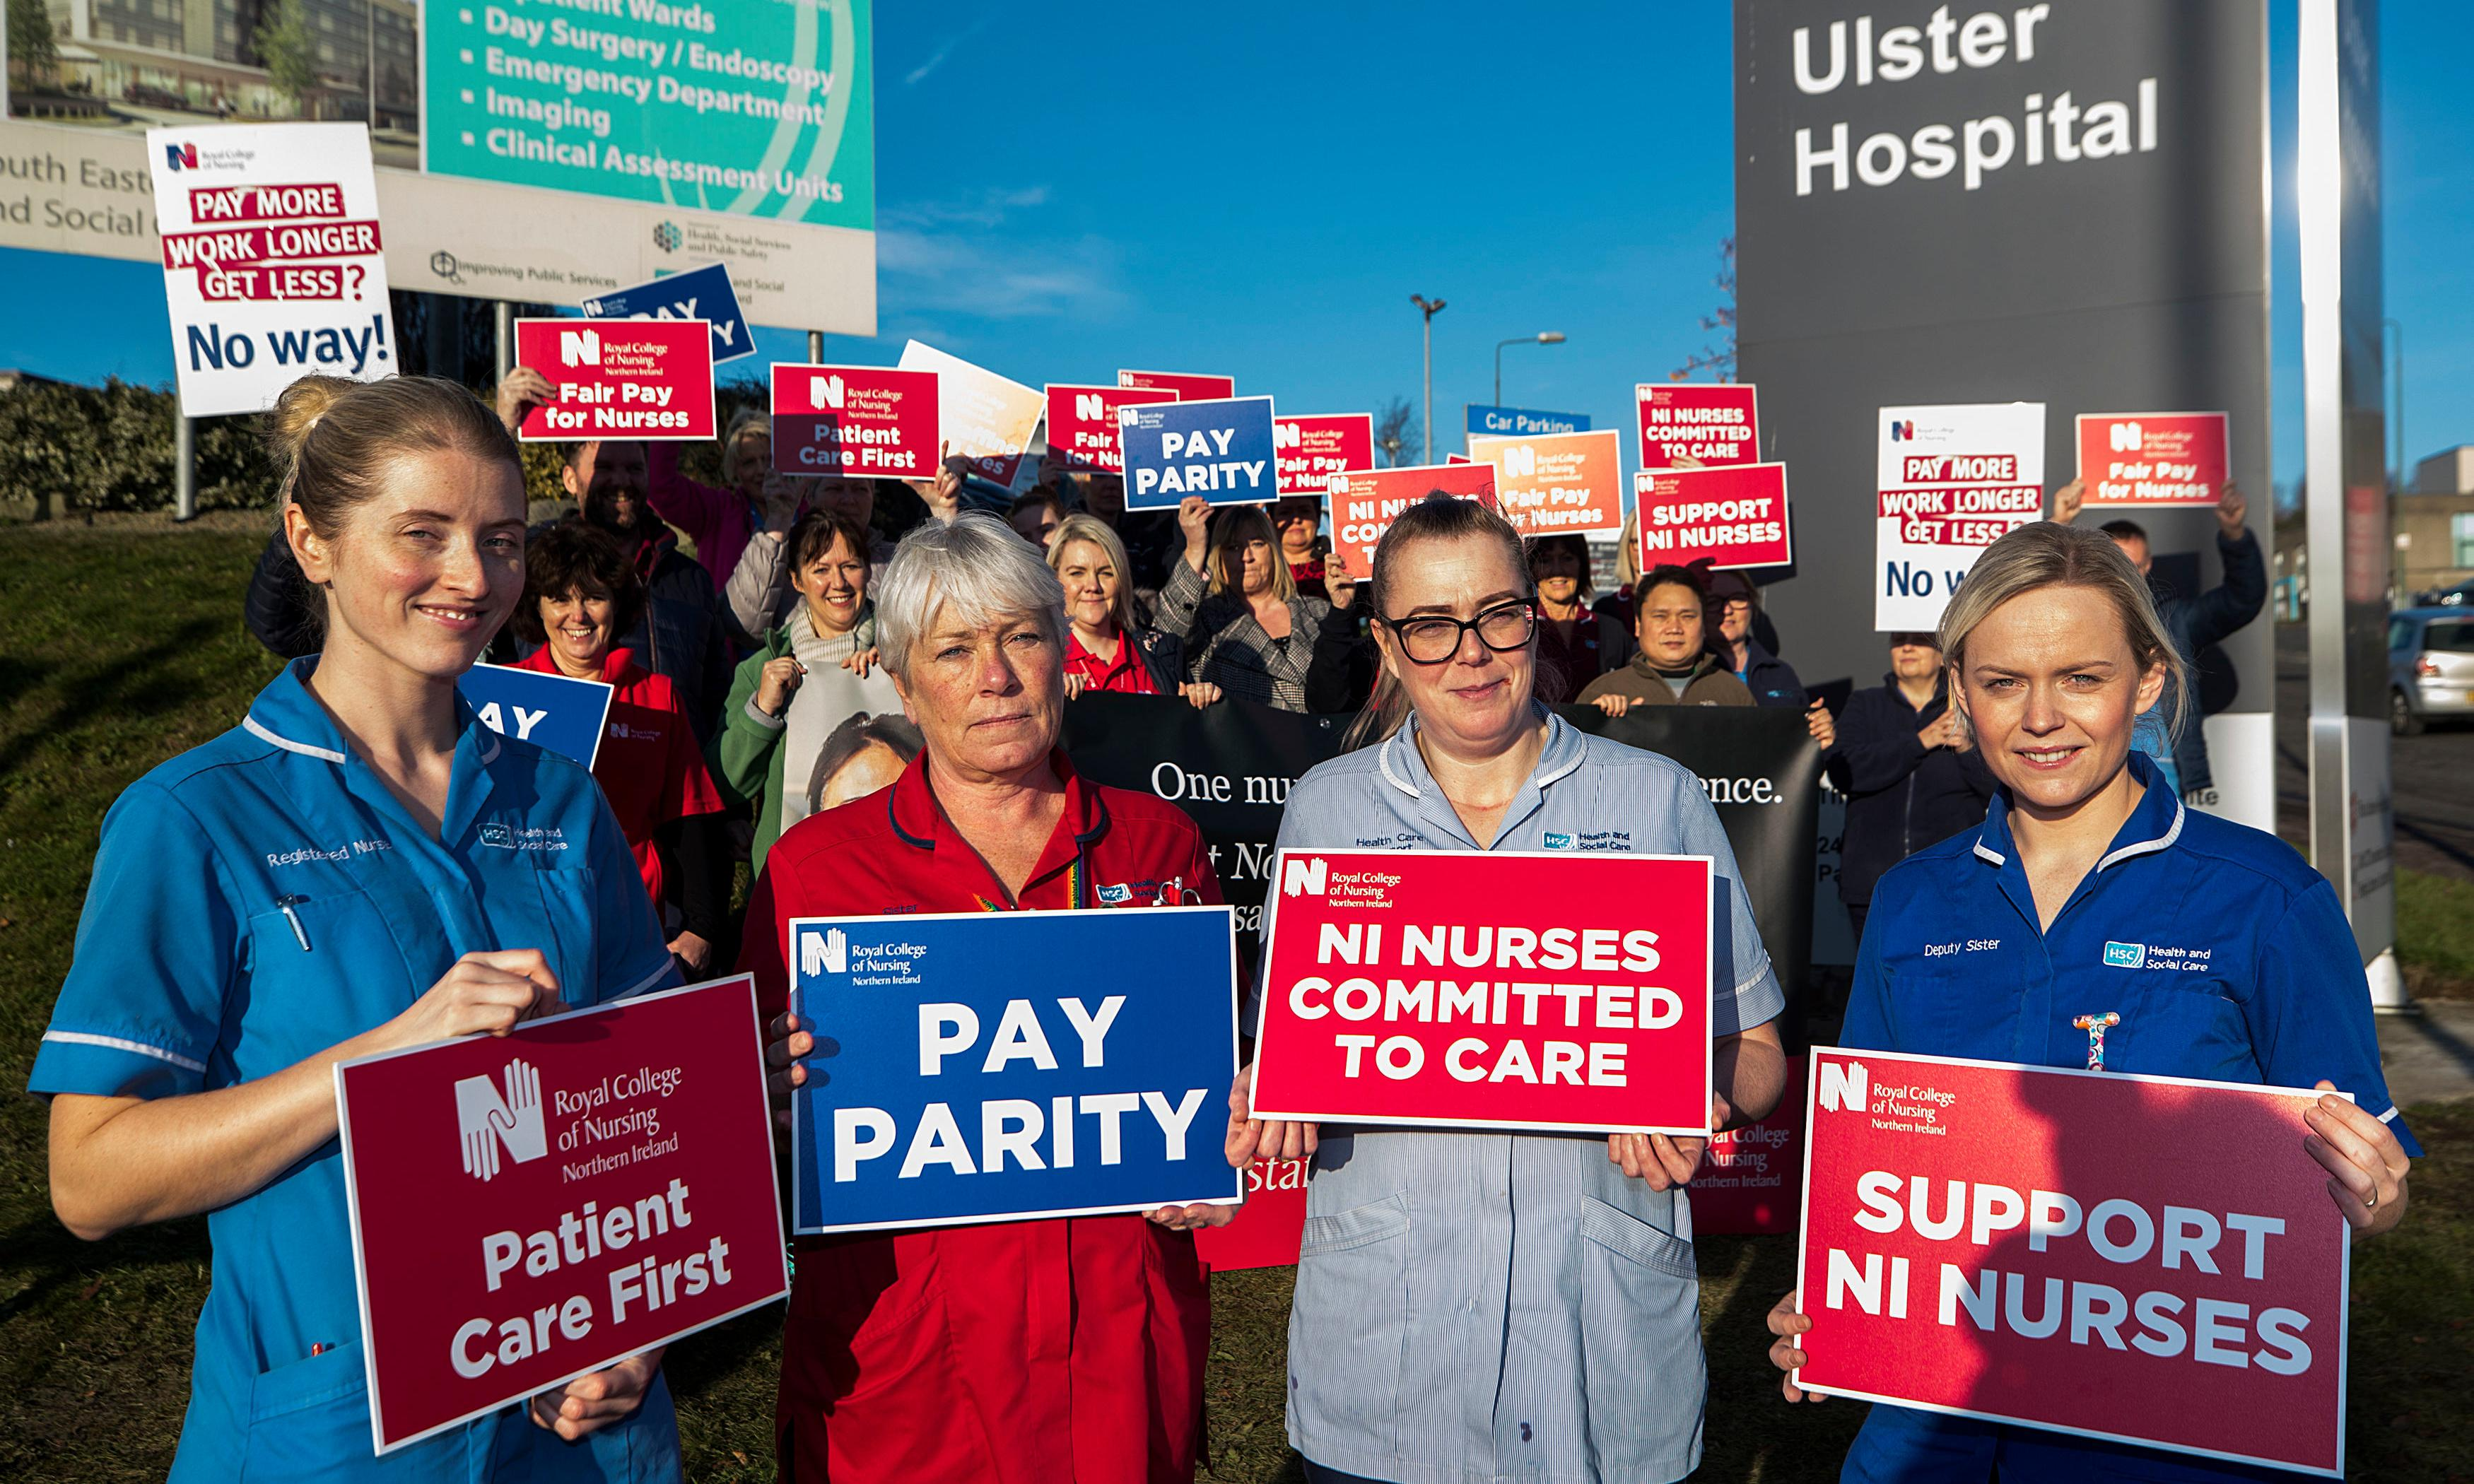 Nurses in Northern Ireland are on strike. The DUP and Sinn Féin are to blame